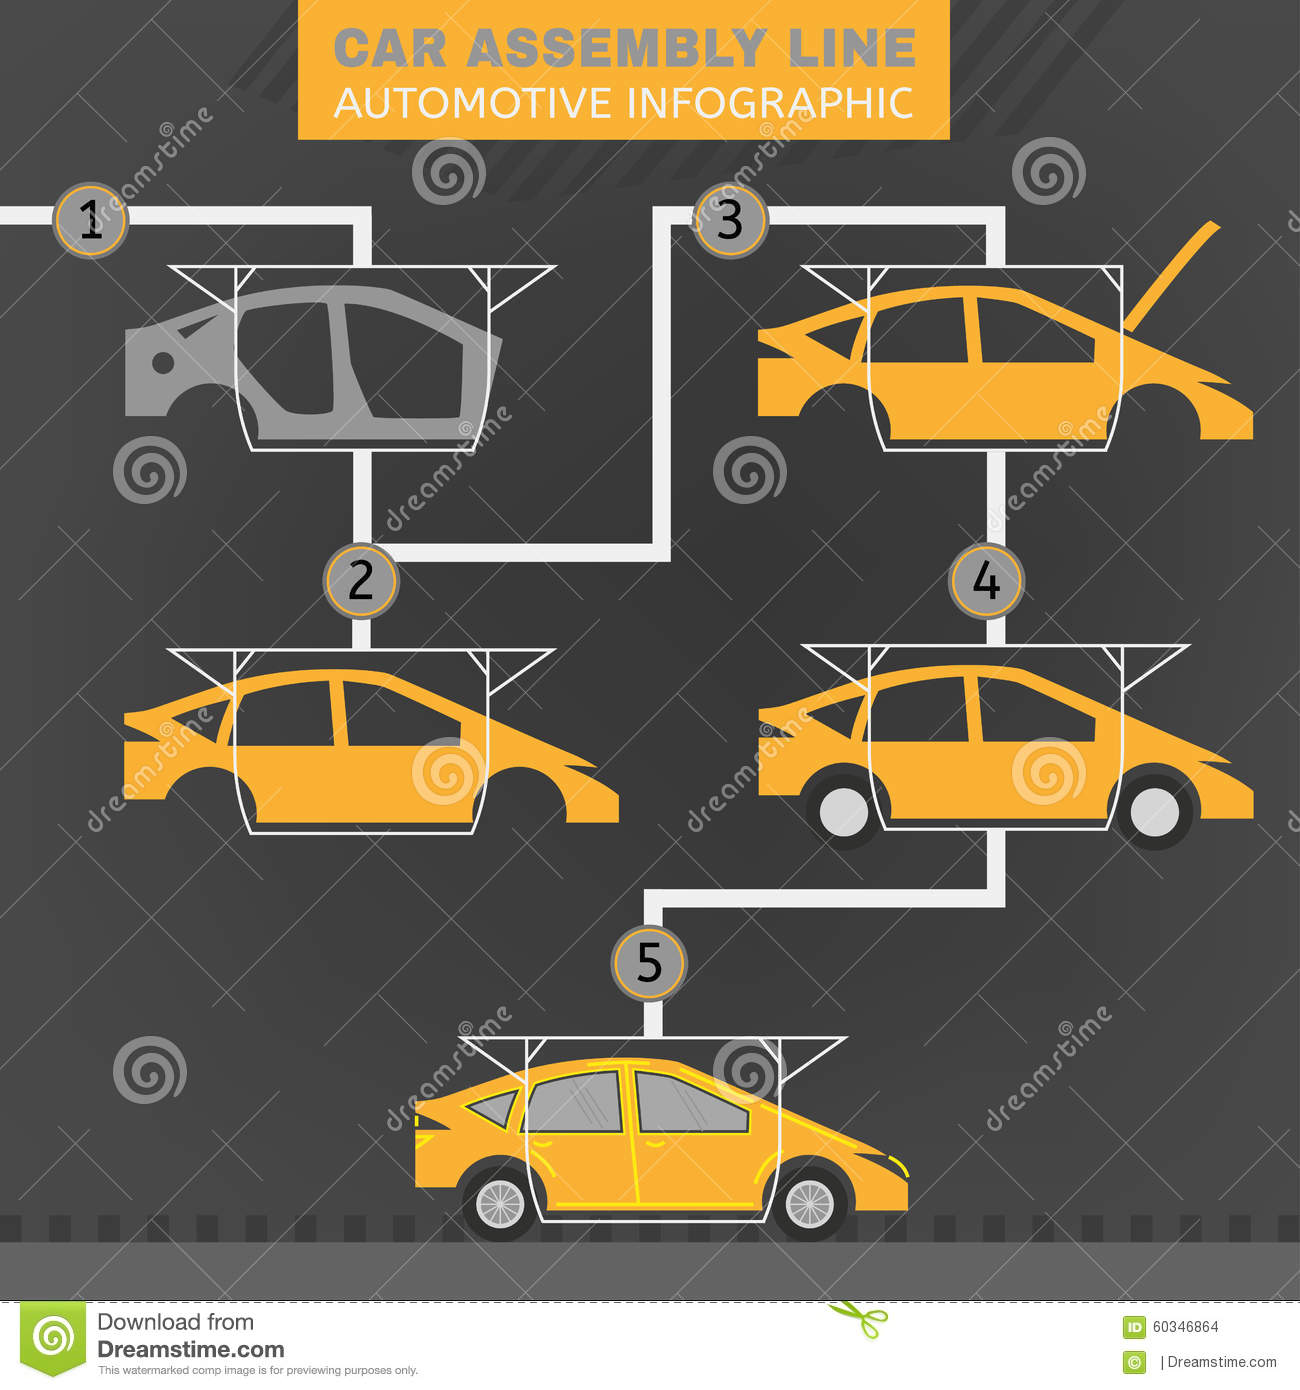 Car assembly line stock vector. Image of industrial ...